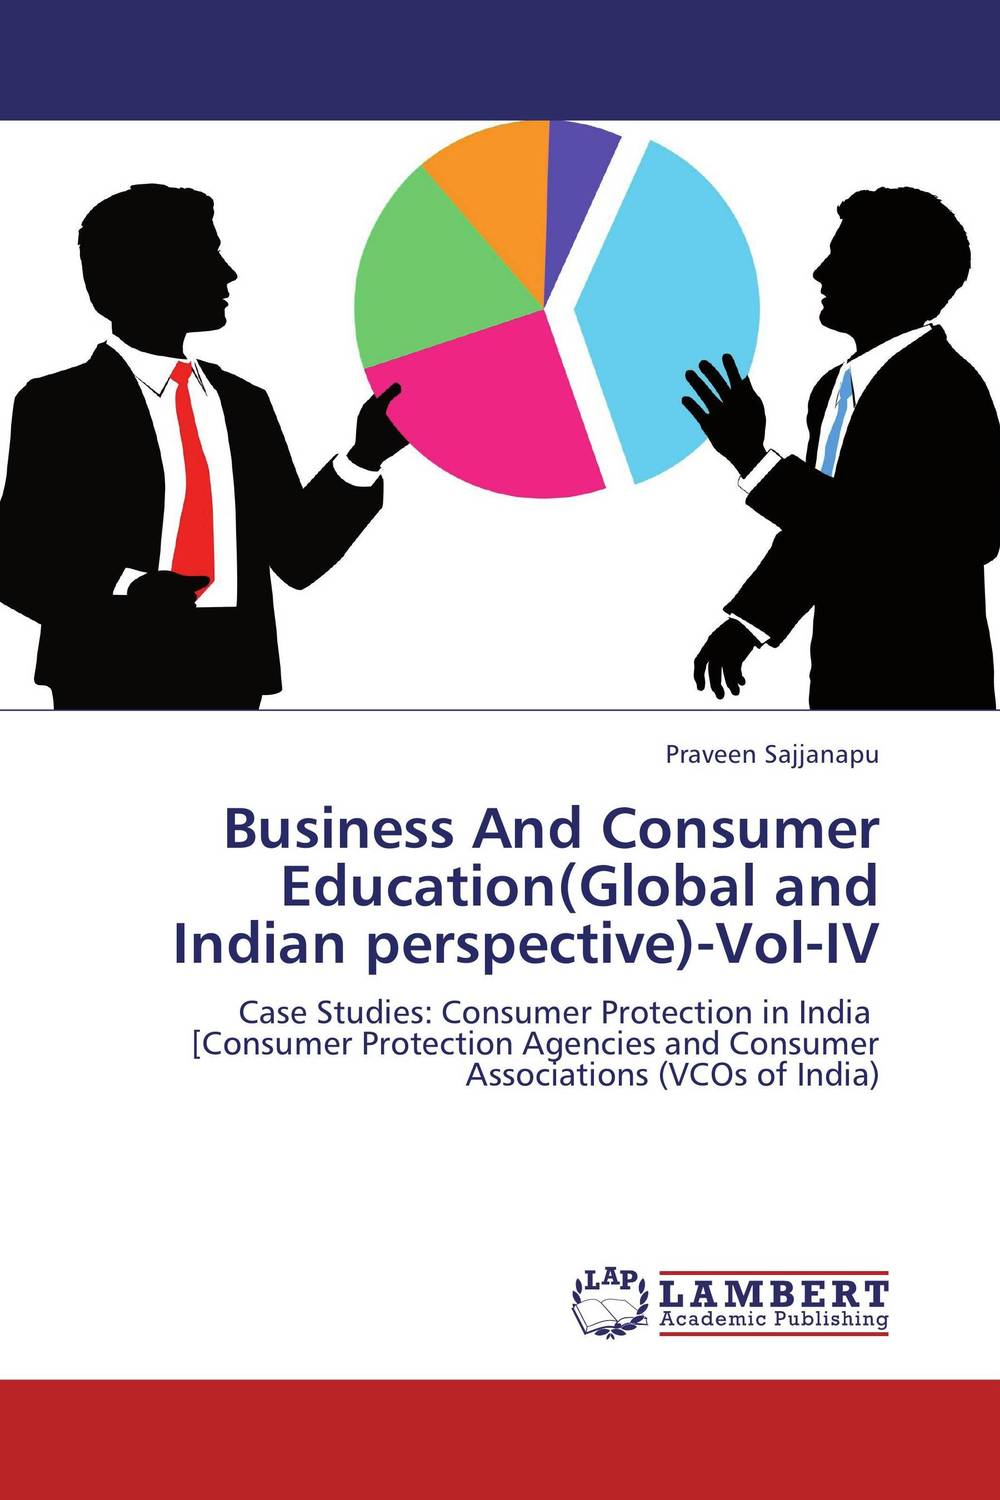 Business And Consumer Education(Global and Indian perspective)-Vol-IV 3mbi50sx 120 02 special offer seckill consumer protection of business integrity quality assurance 100